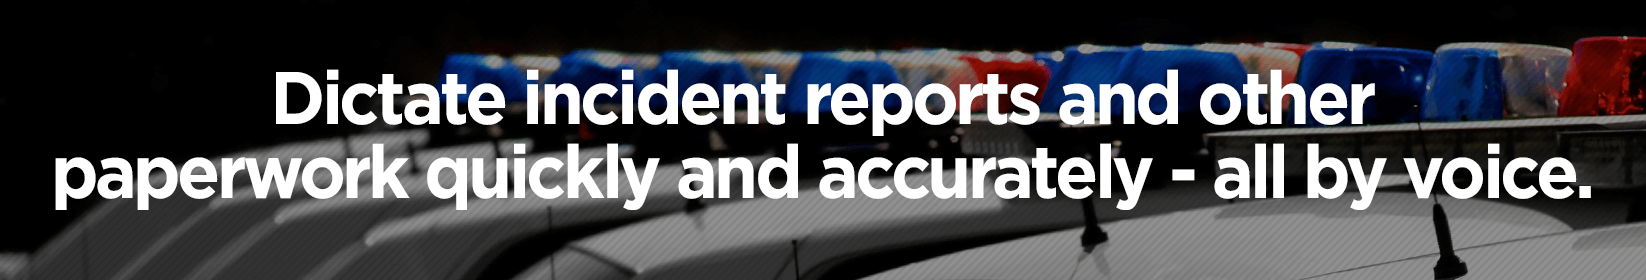 Dictate incident reports and other paperwork quickly and accurately - all by voice.